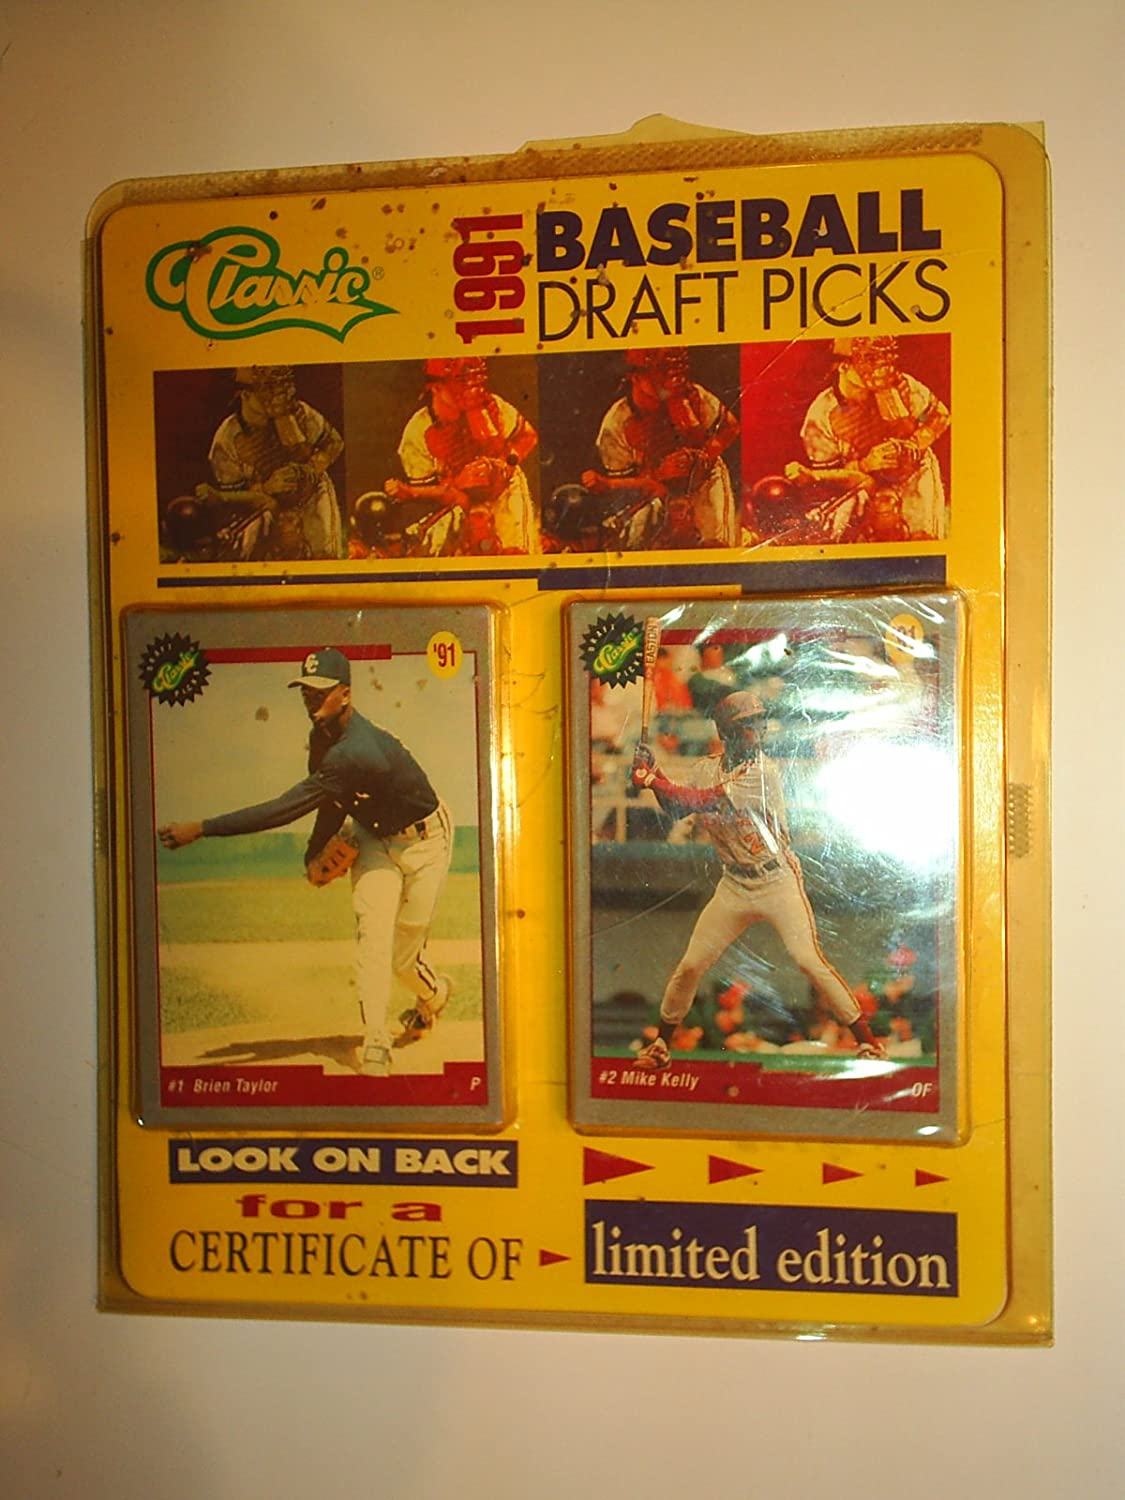 Vintage 1991 classic baseball draft picks certificate limited.